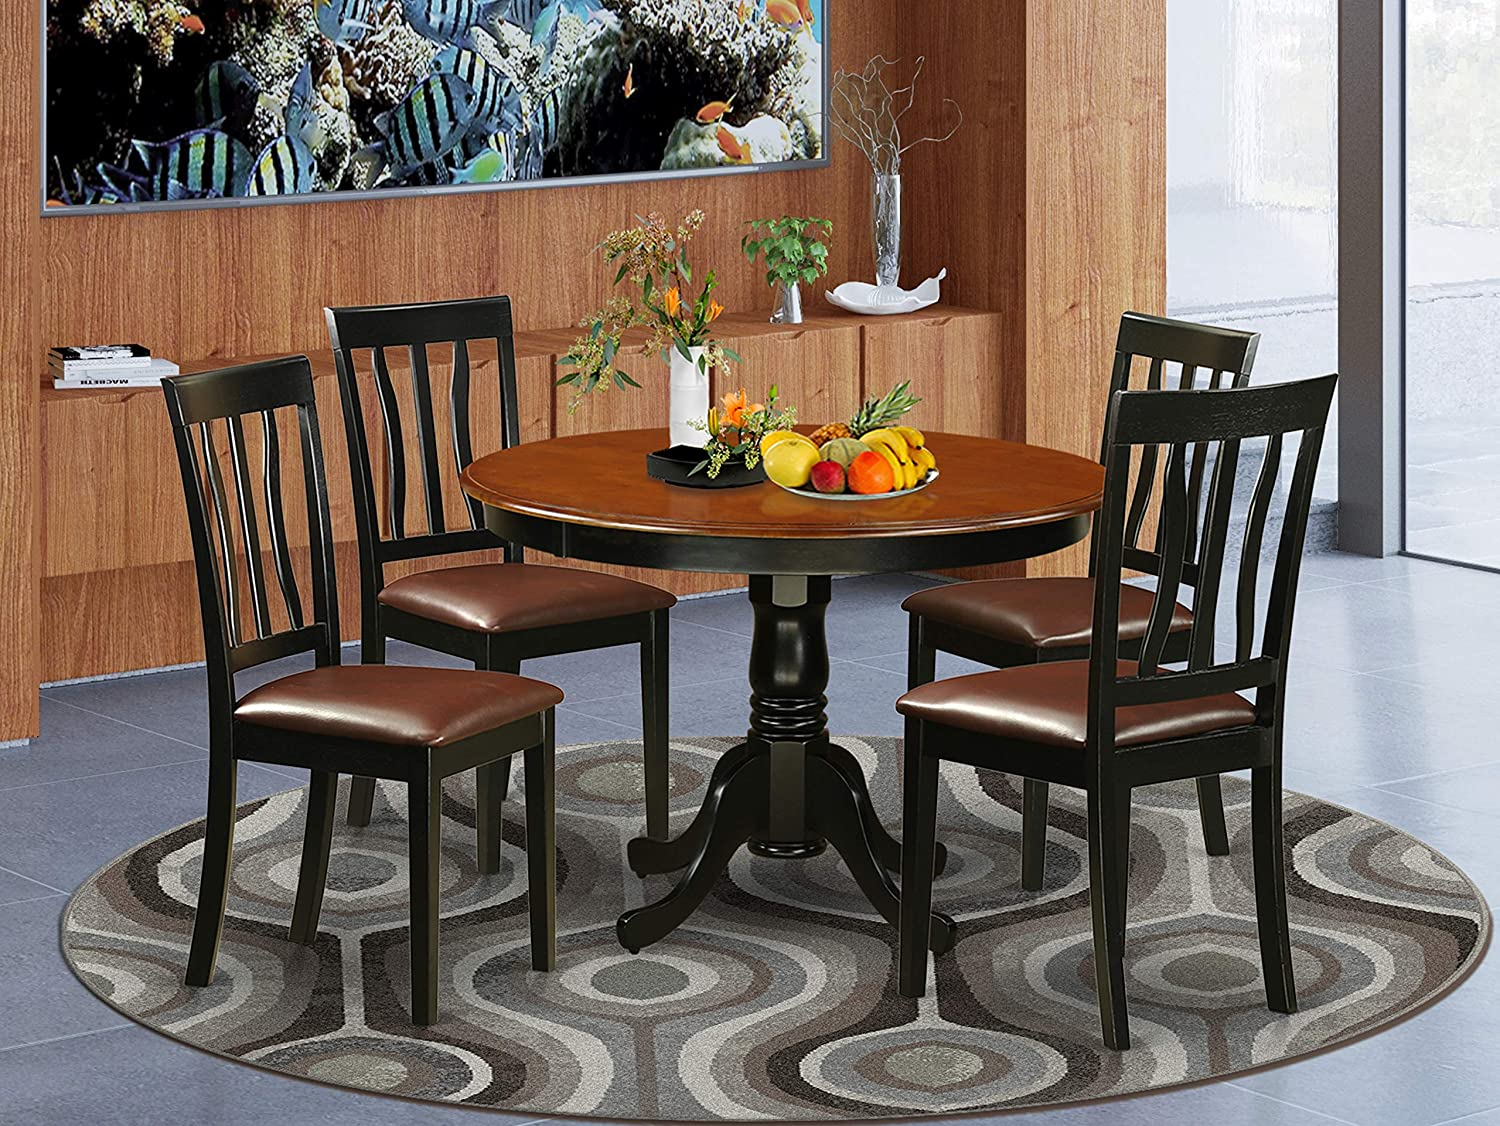 Buy East West Furniture 9 Piece Kitchen Table Set Included a ...